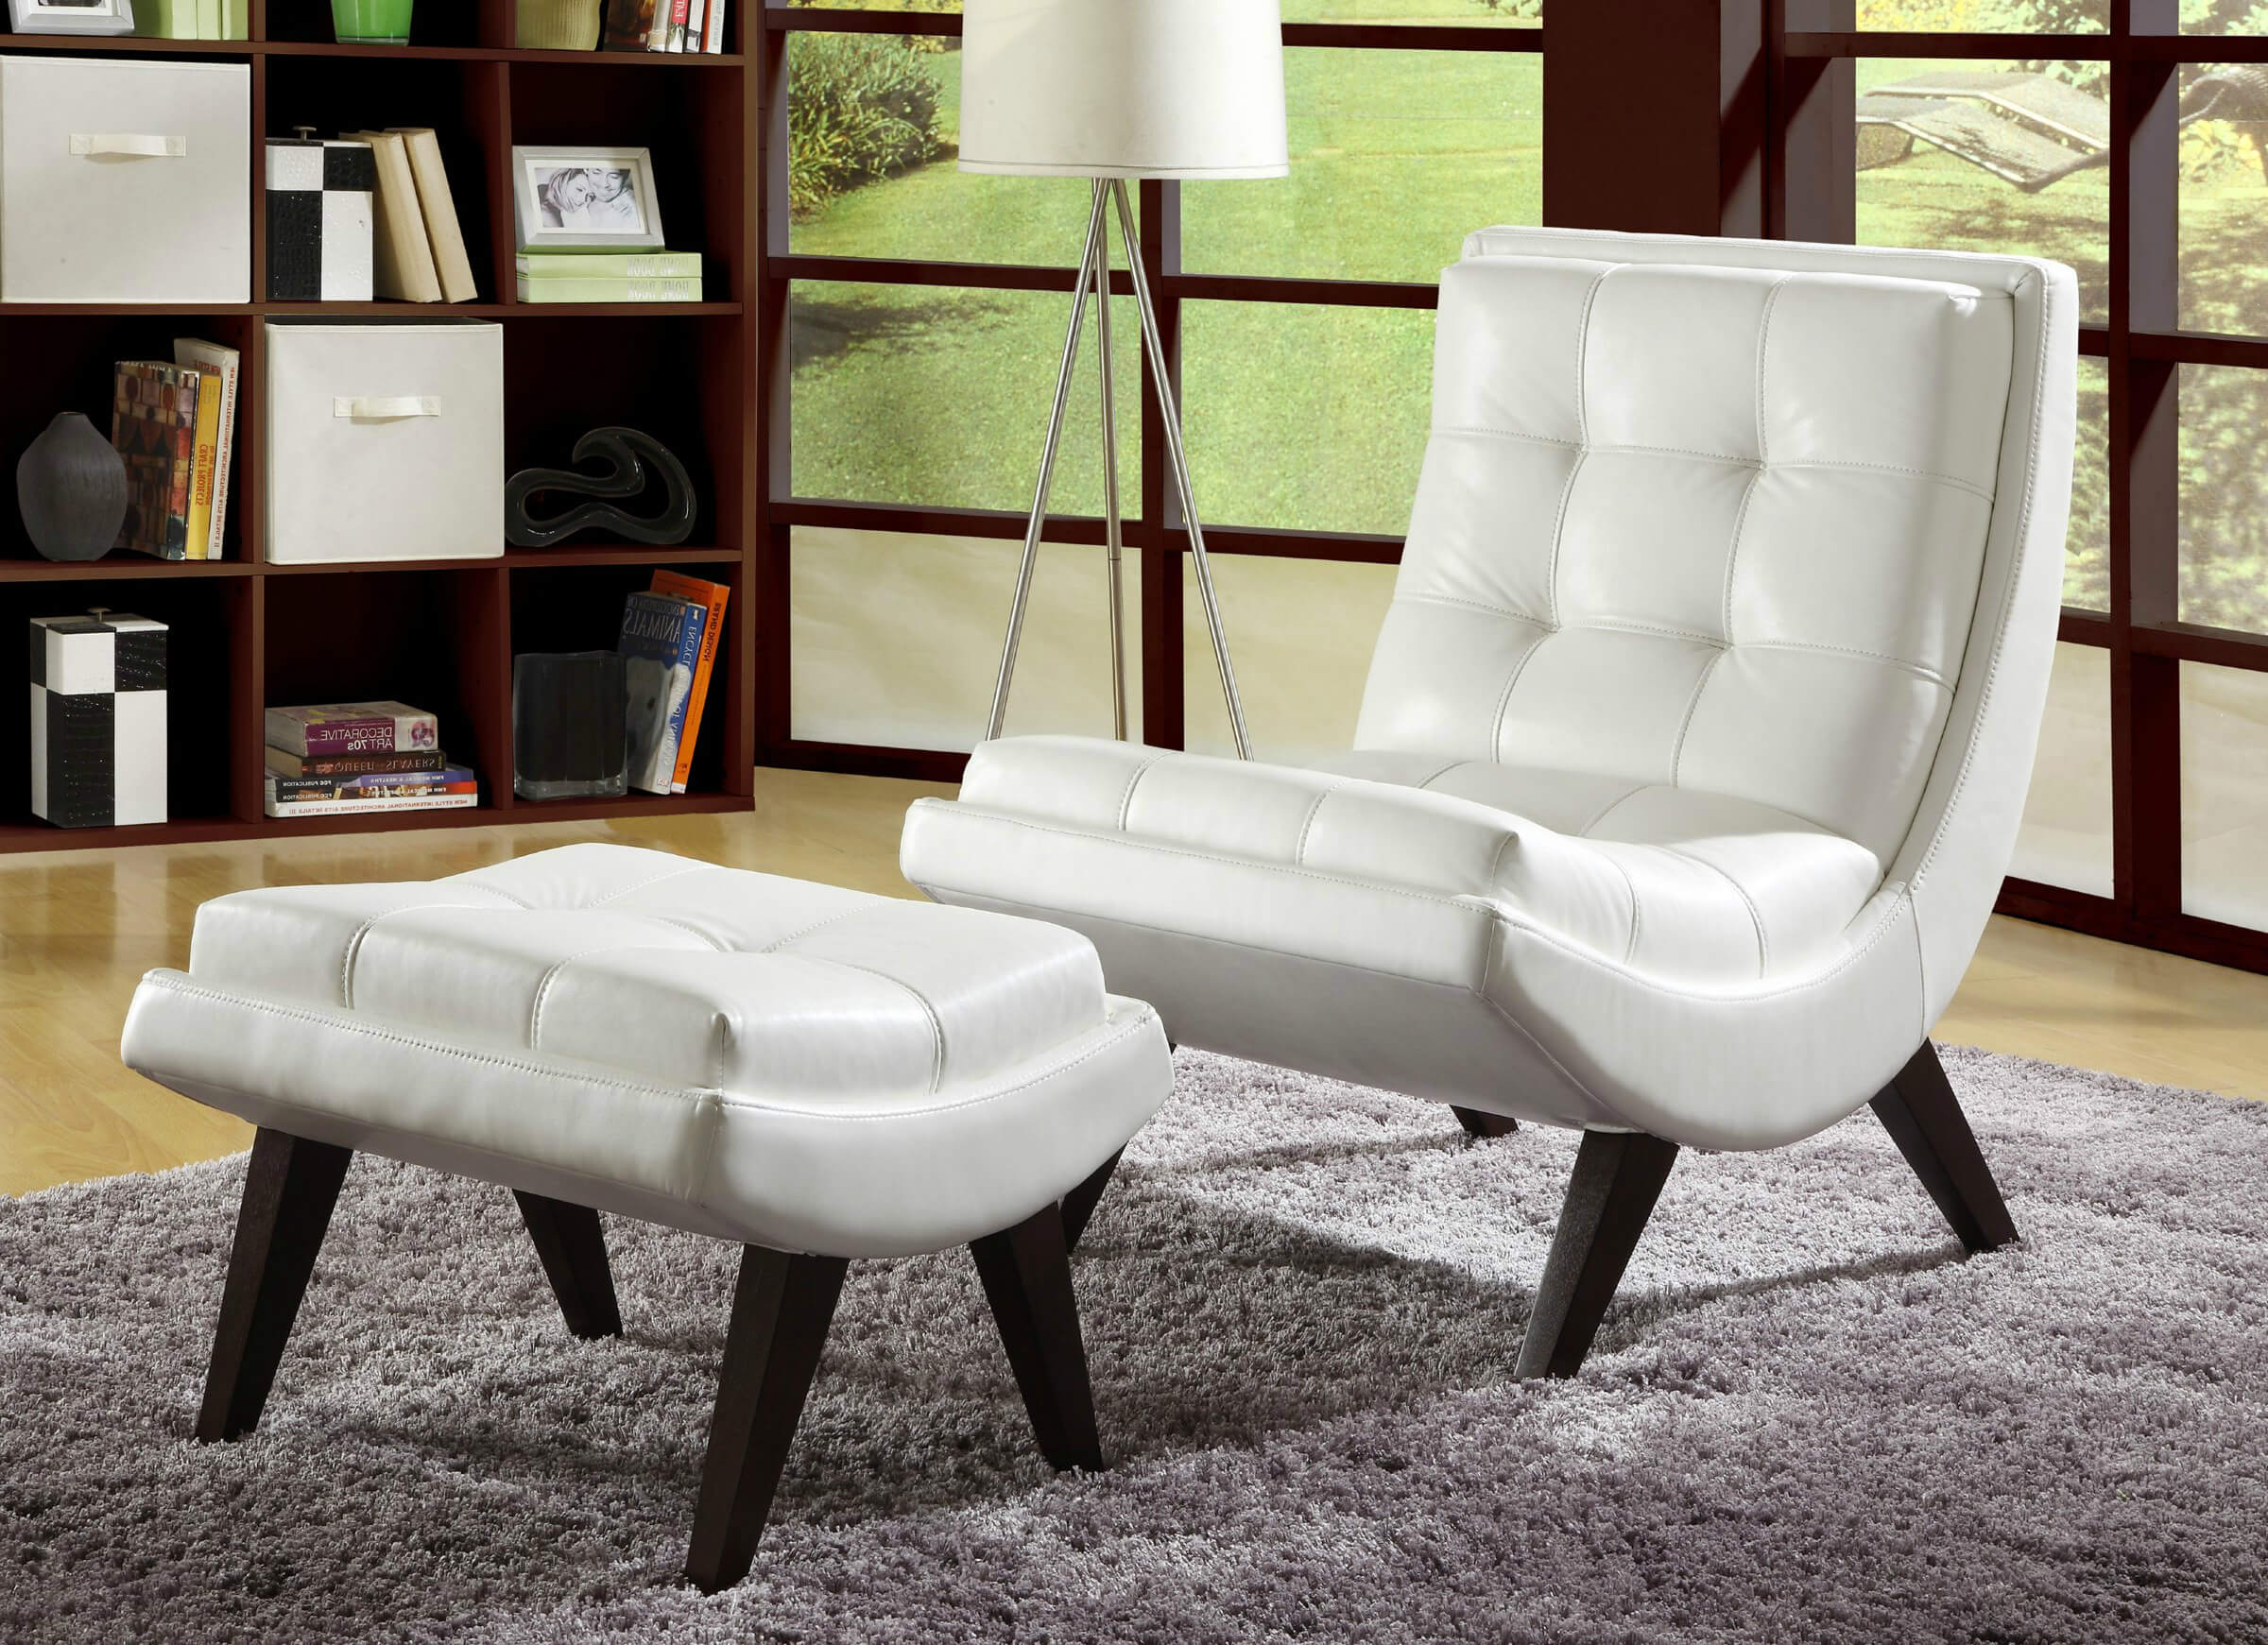 Chair Ottoman Sets Living Room Chairs For Less Overstock. Gray Chair ...